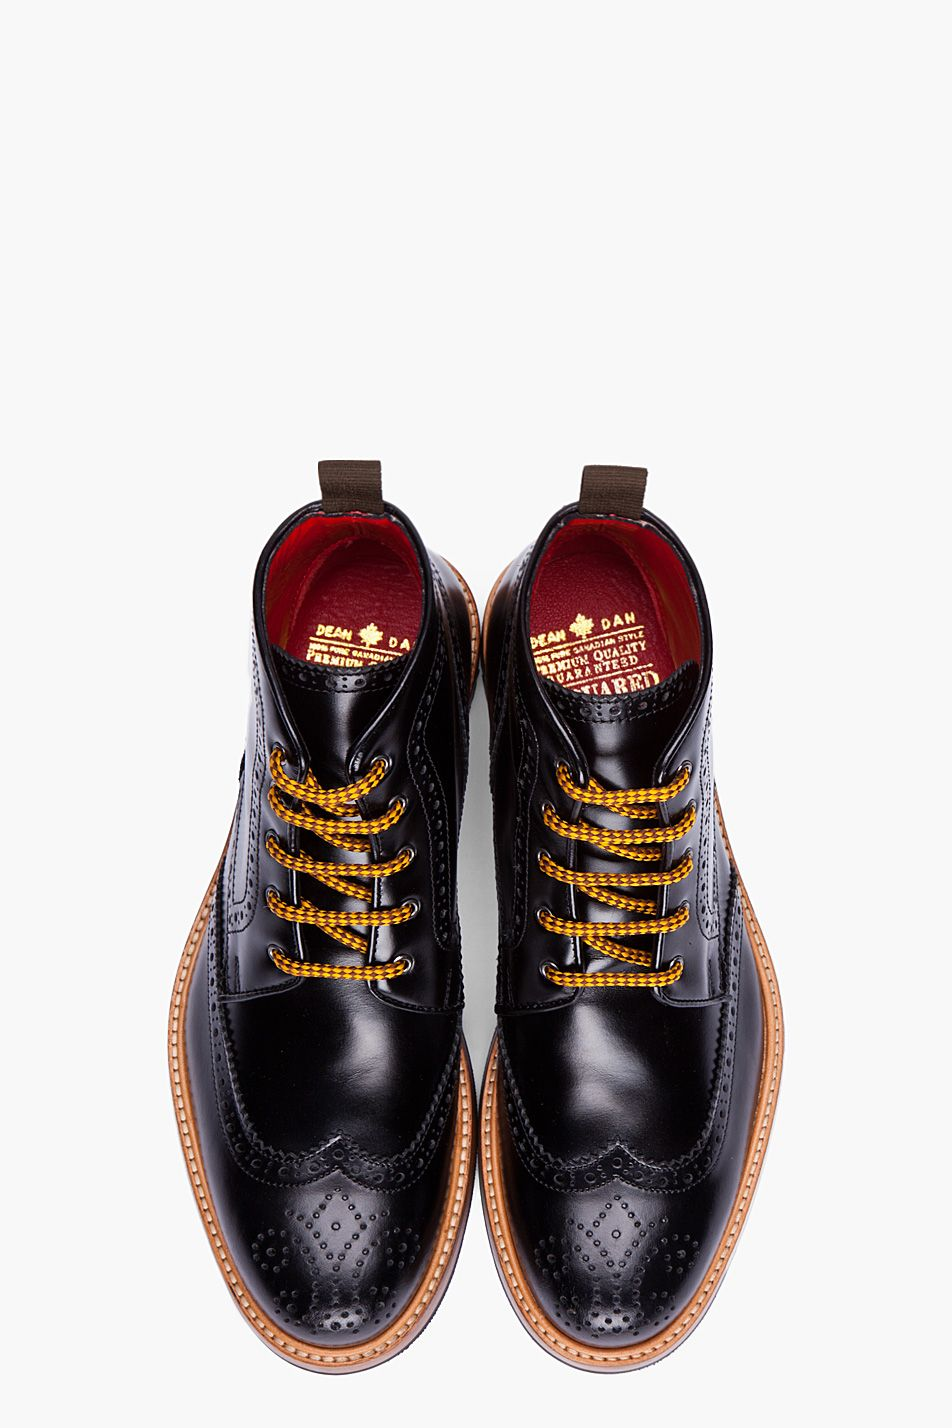 9e6f3066e20 Dsquared2 Black Bowles Brogue Boots. OOOOH I want these. #handsome #beards  #lifestyle